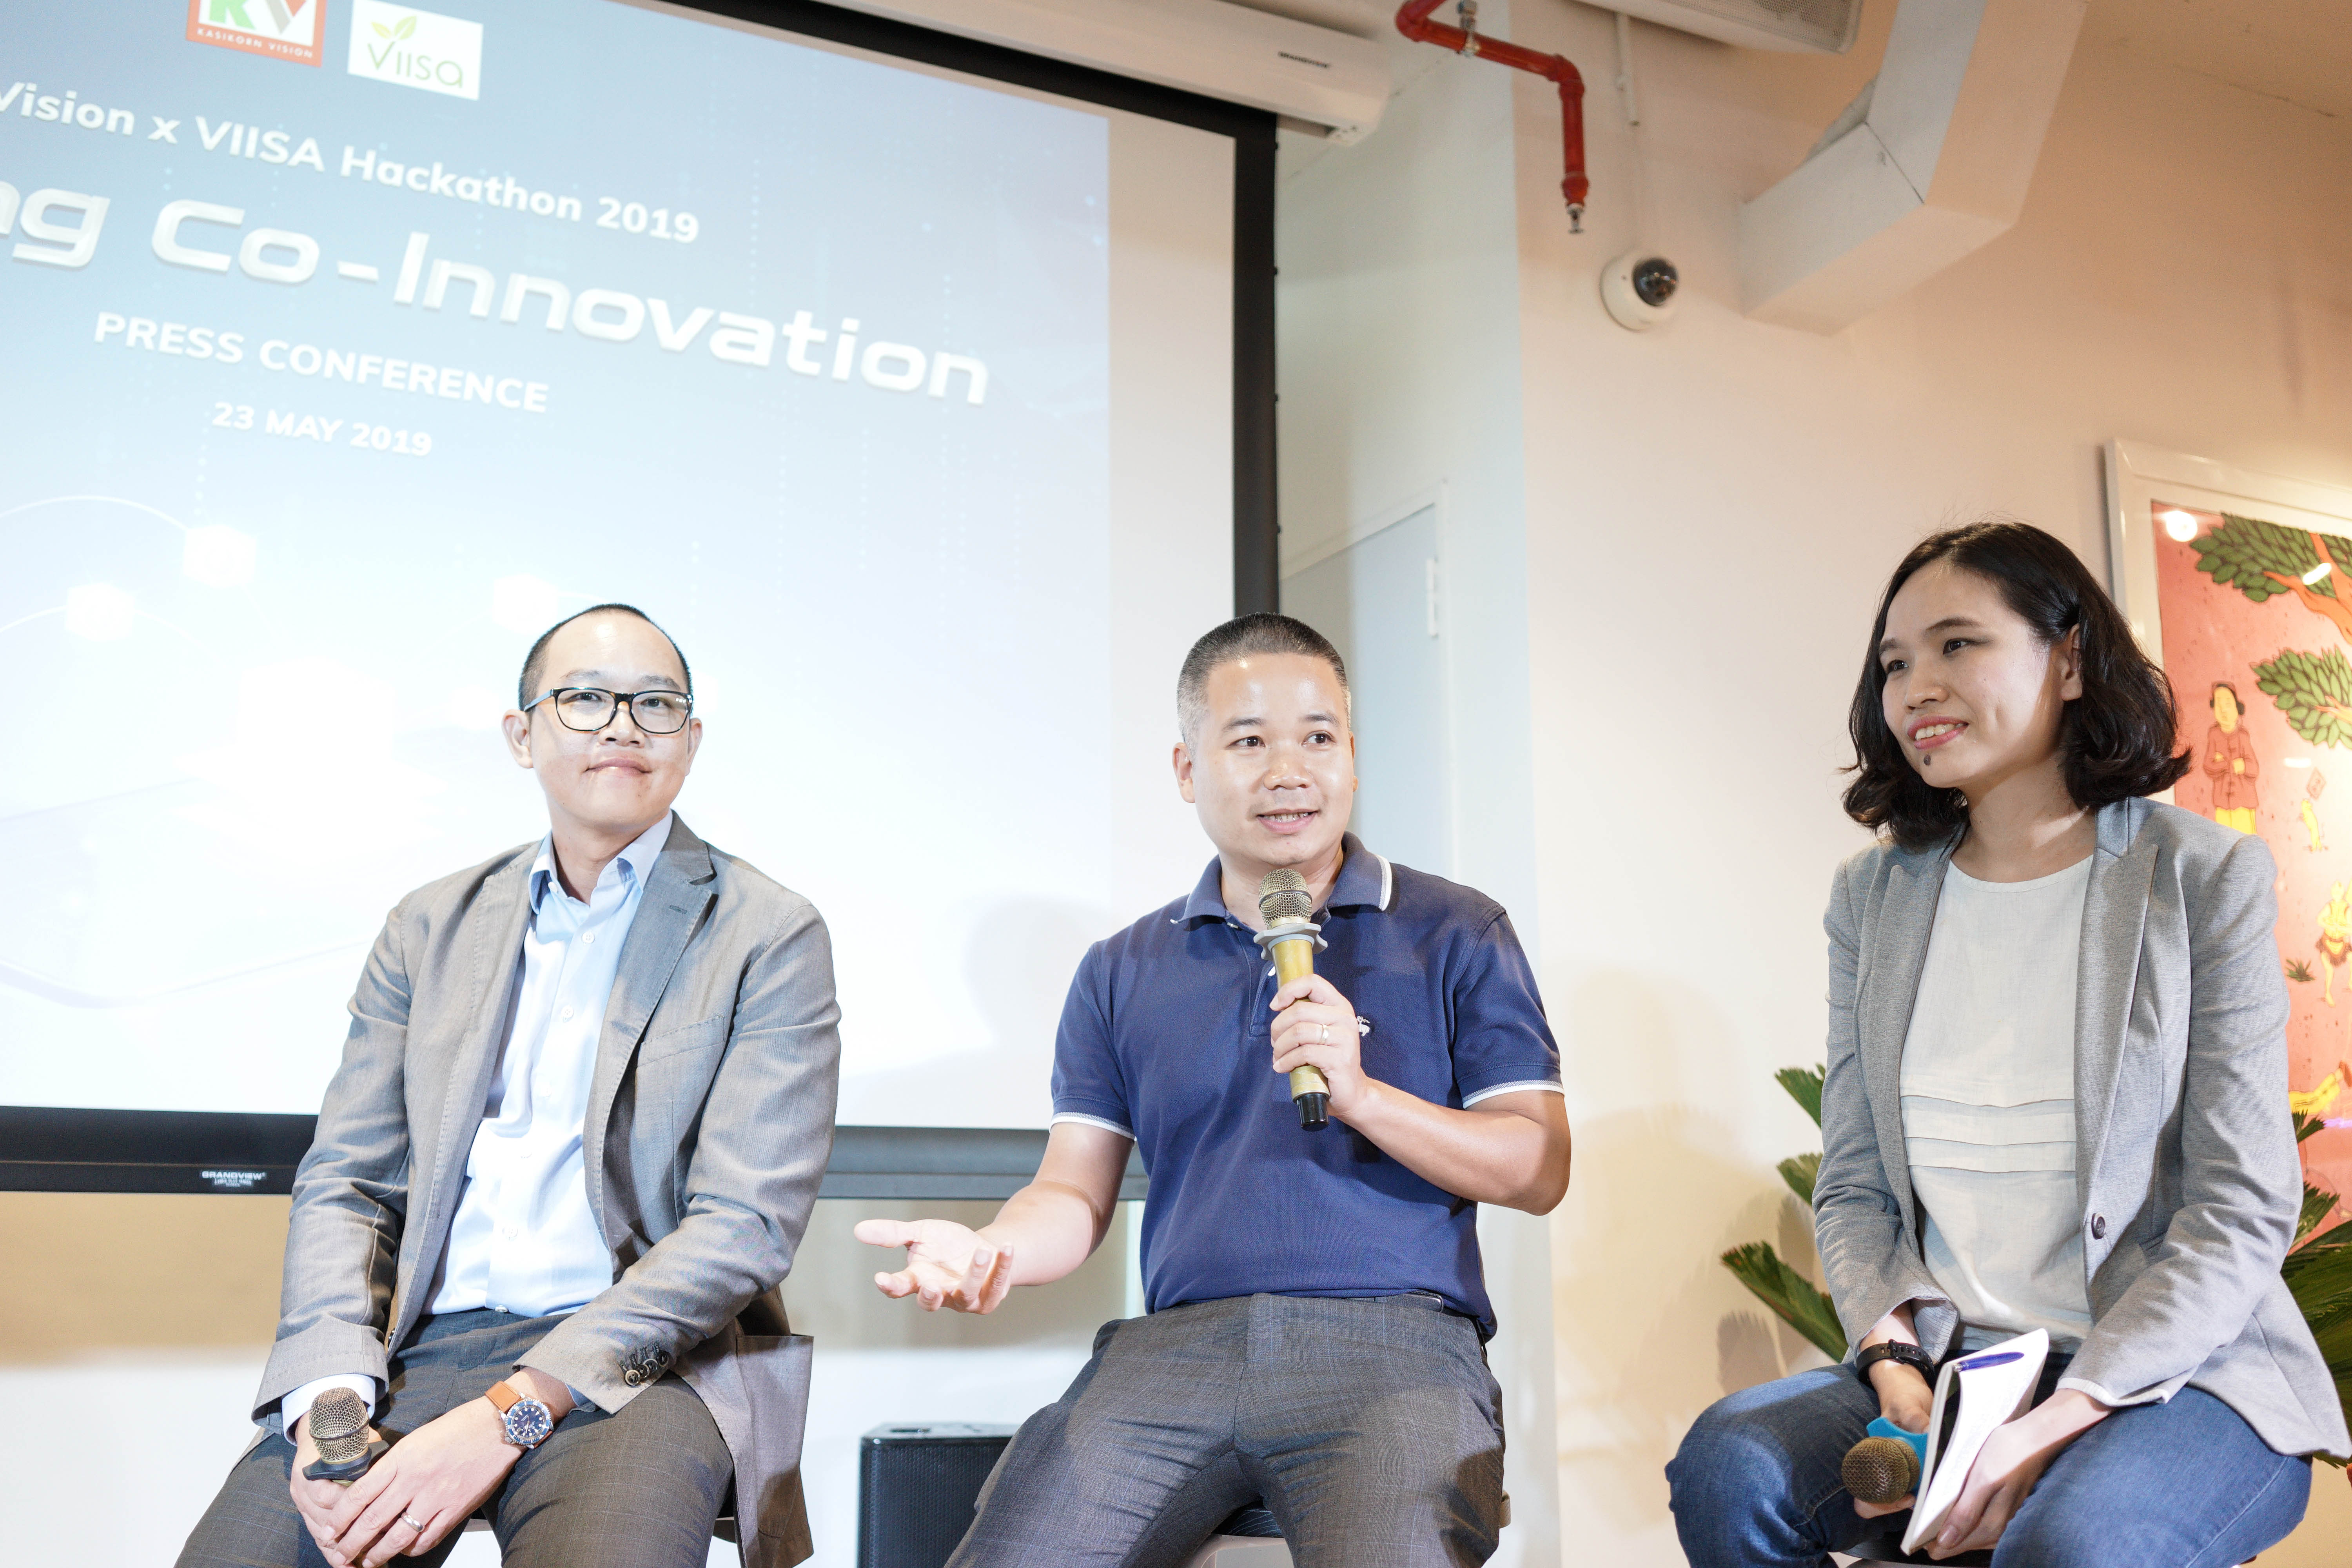 KVision launches hackathon to co-innovate with Vietnamese startups